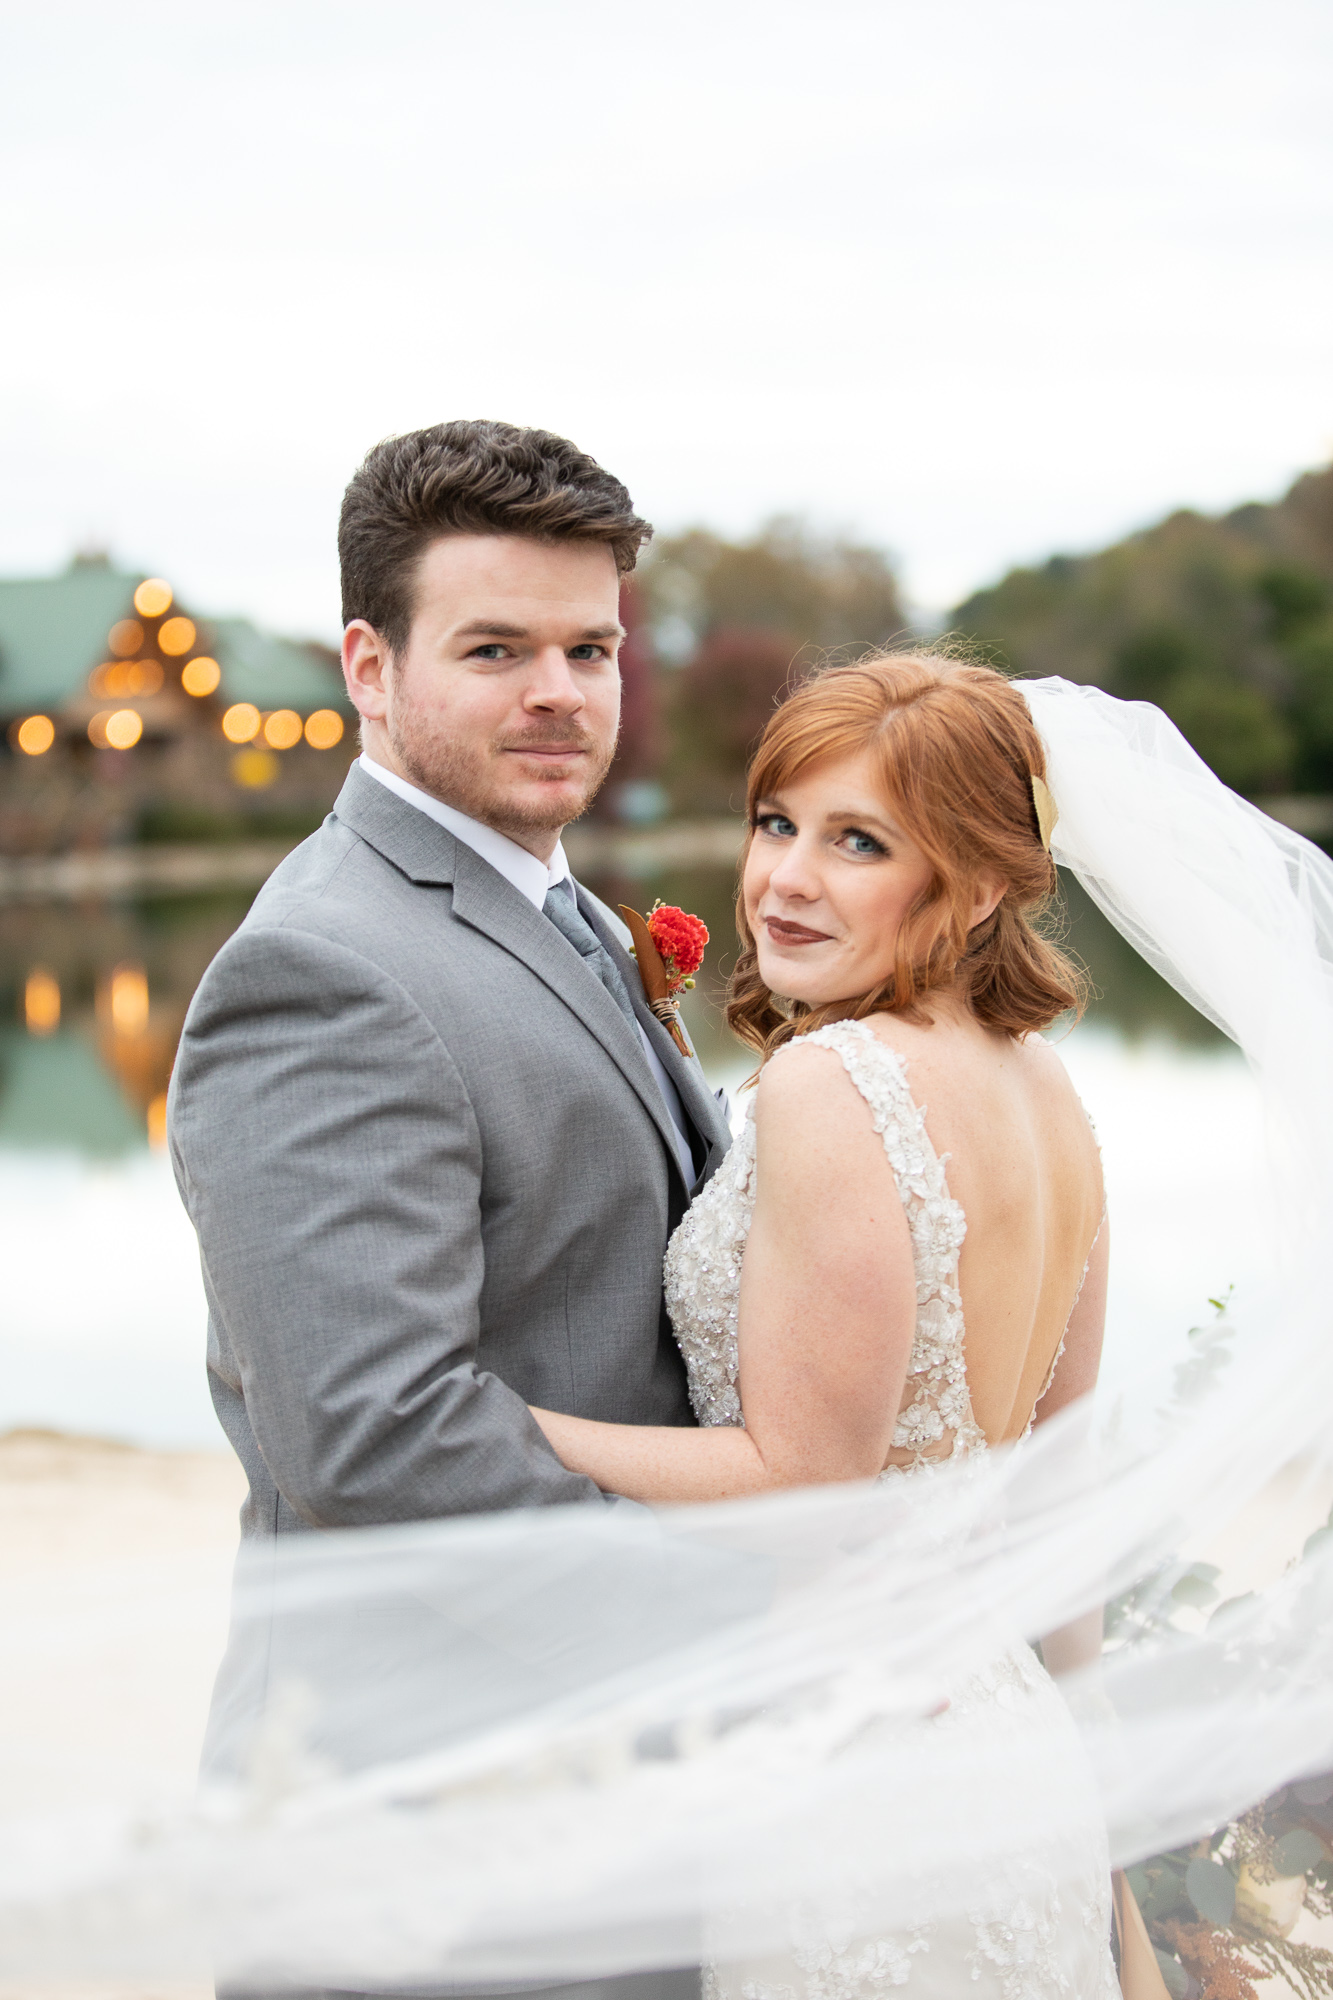 Bride and Groom smiling at The Gathering Place autumn wedding styled shoot.